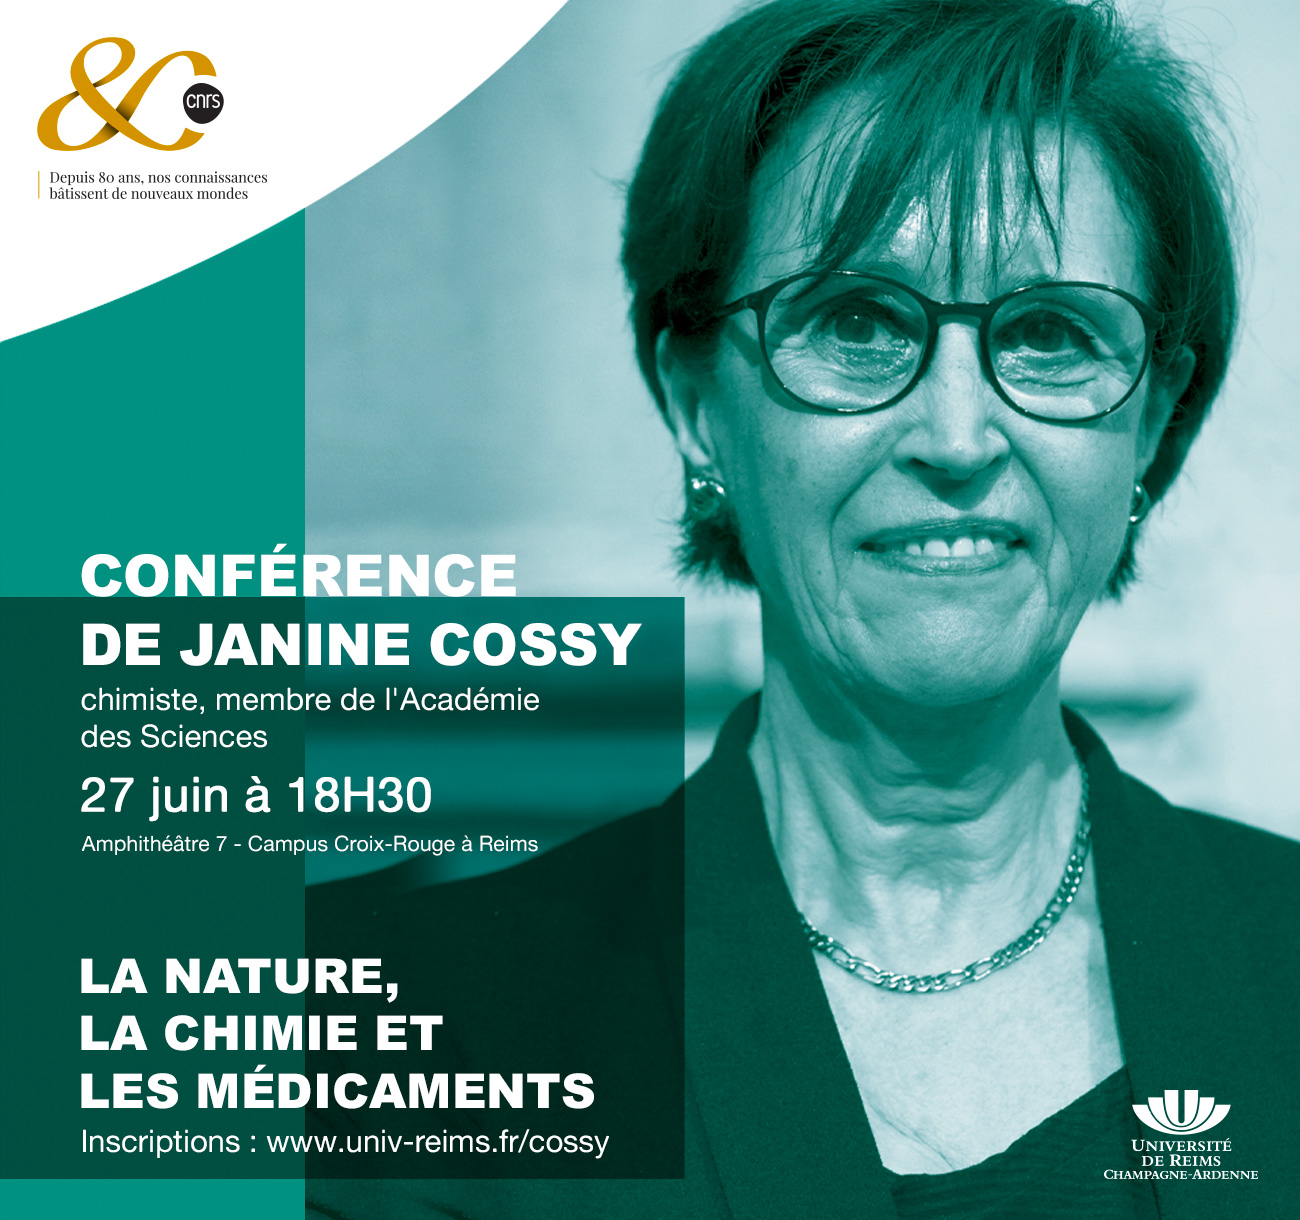 Affiche Conférence Janine Cossy